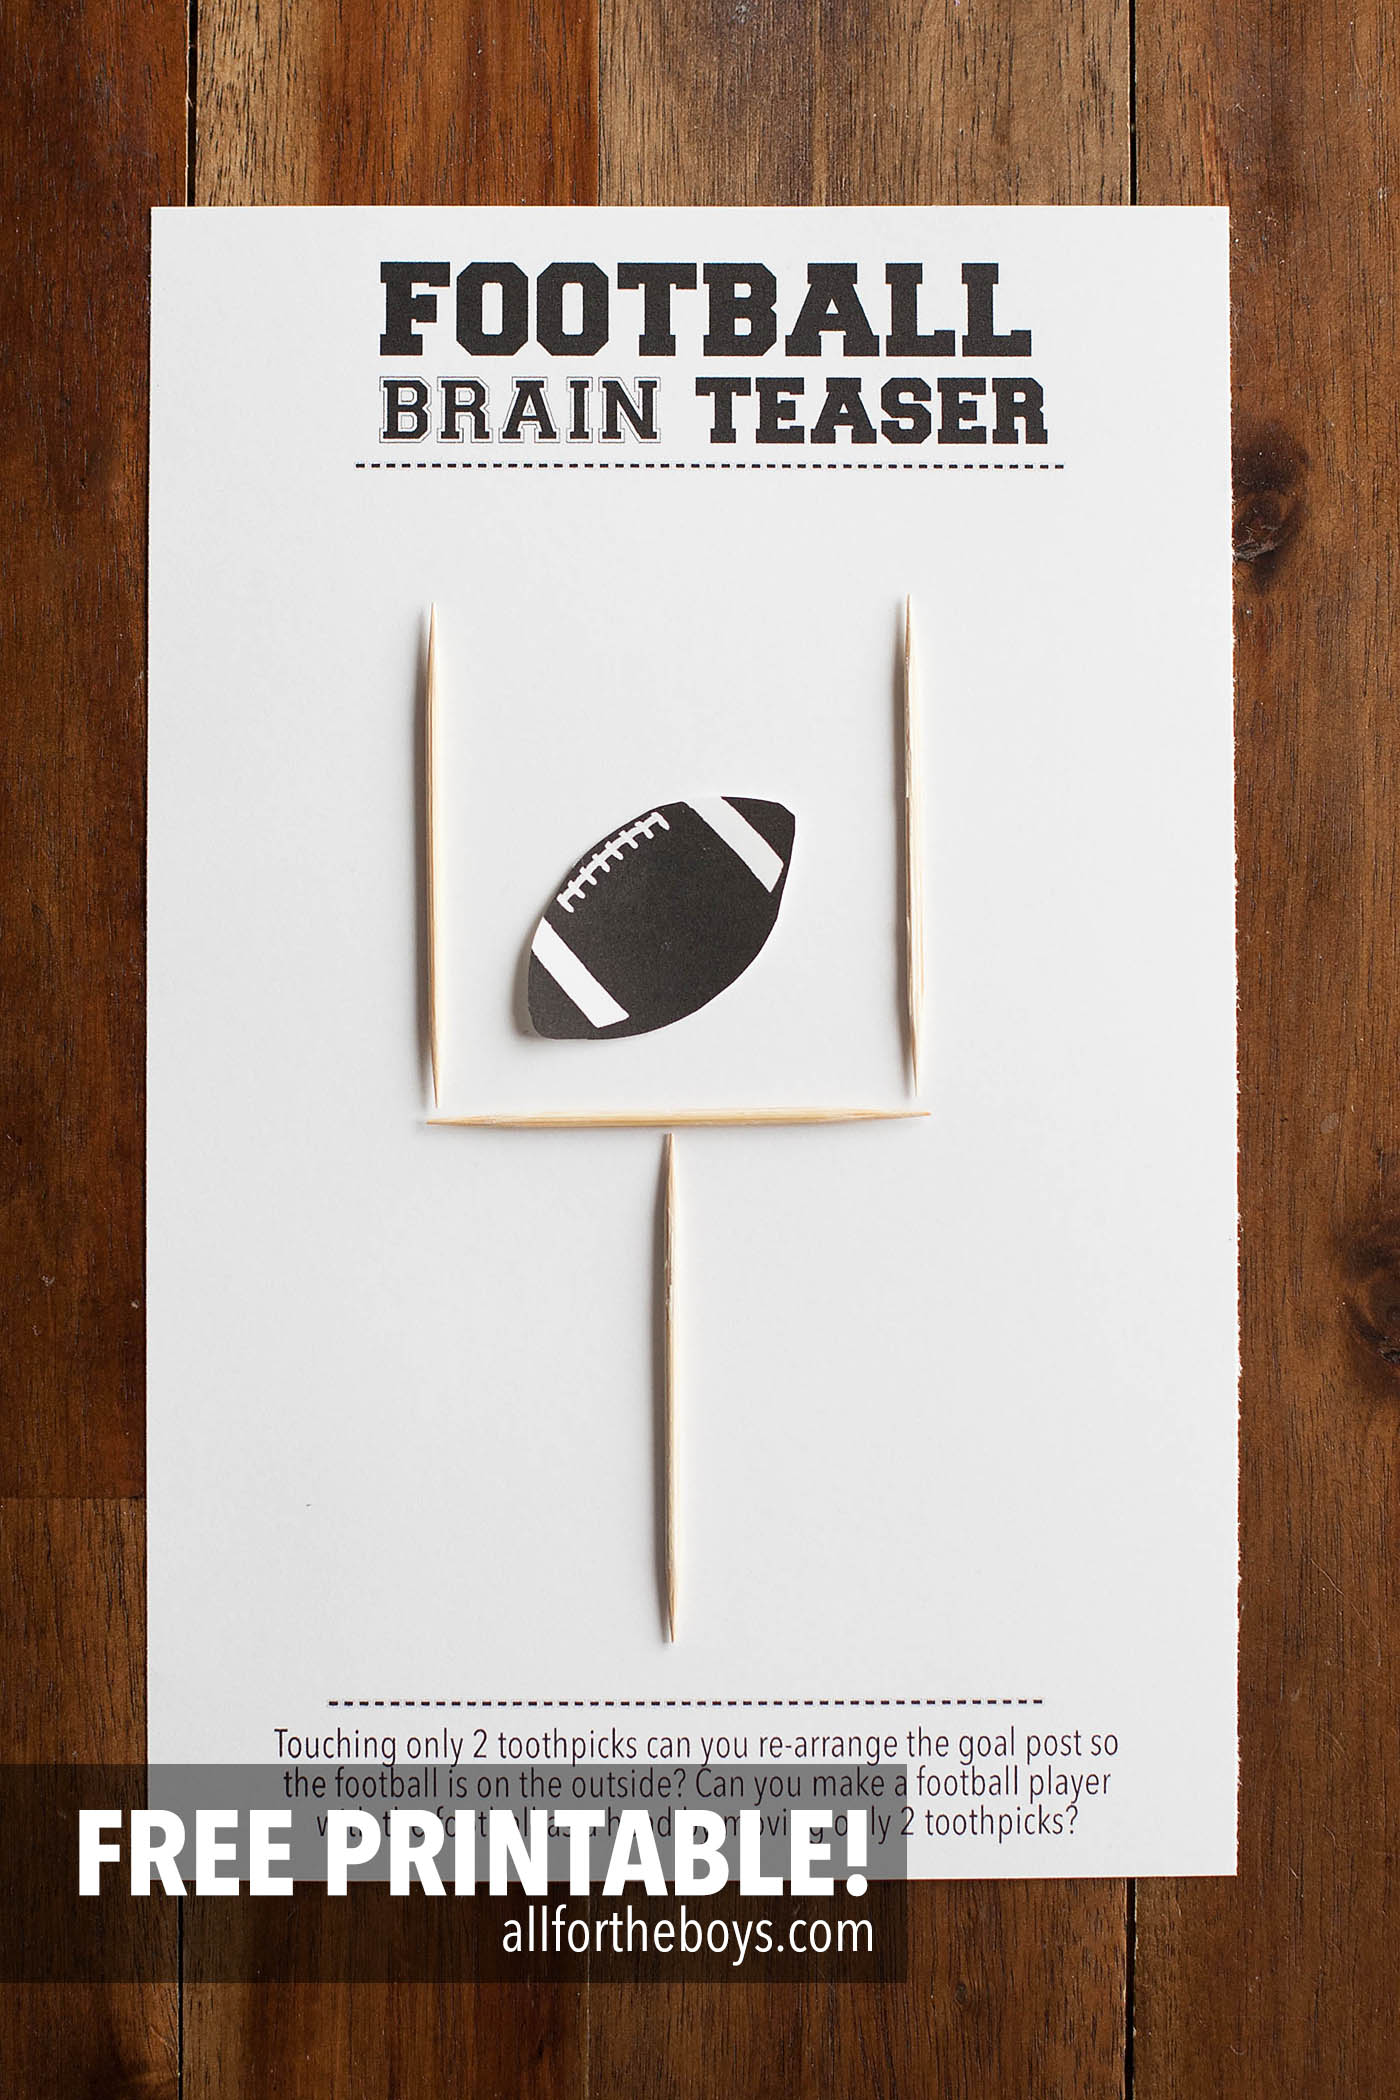 Football Brain Teaser Printable u2014 All for the Boys